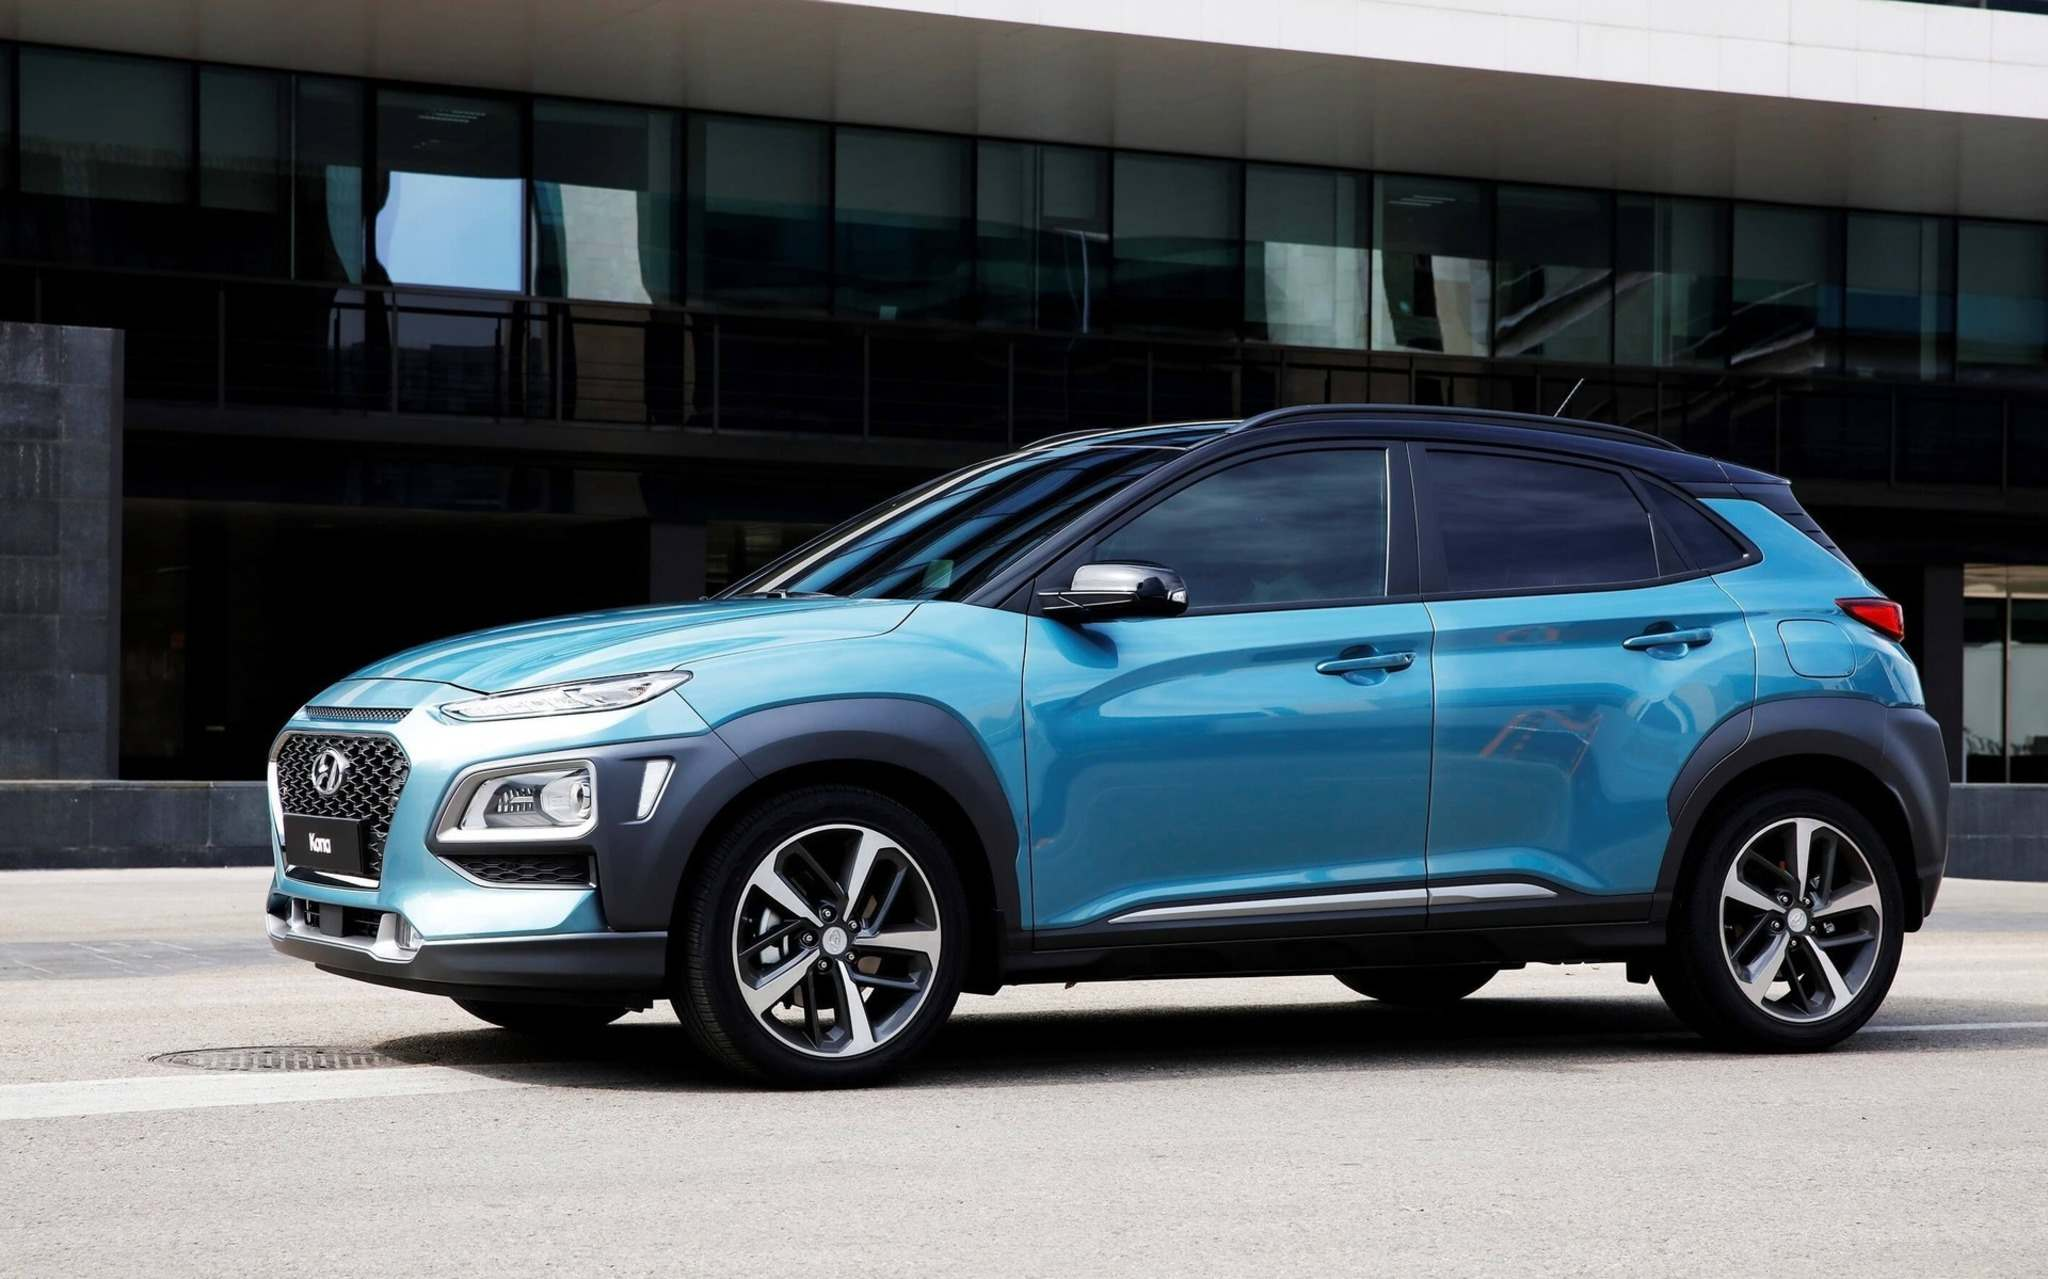 The Hyundai Kona is an inexpensive crossover option with all wheel drive.